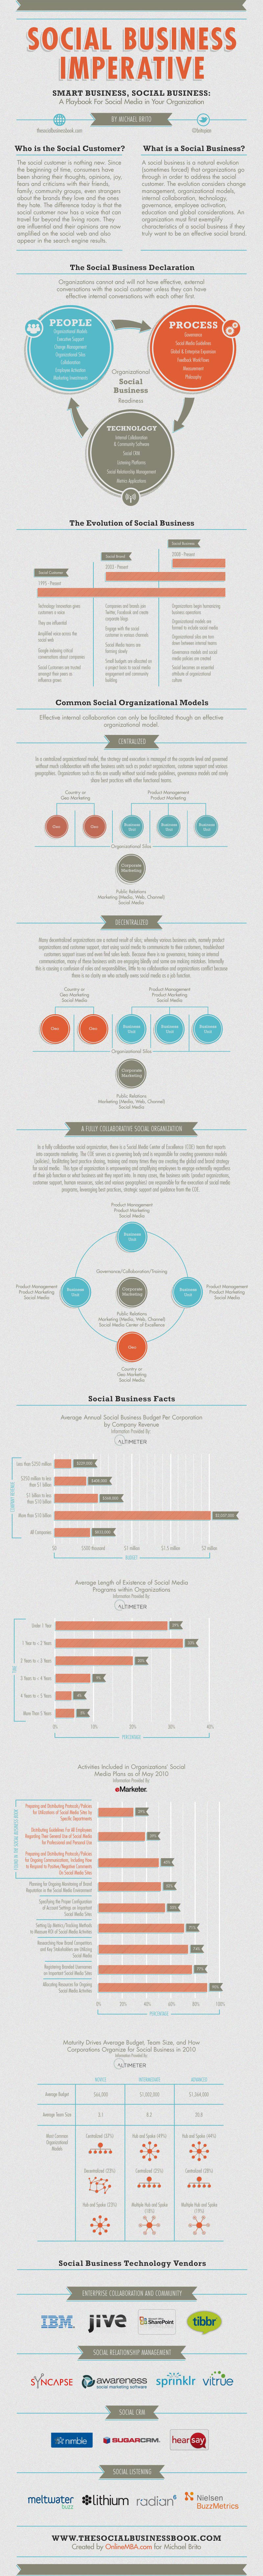 What Makes A Business Social? image social business